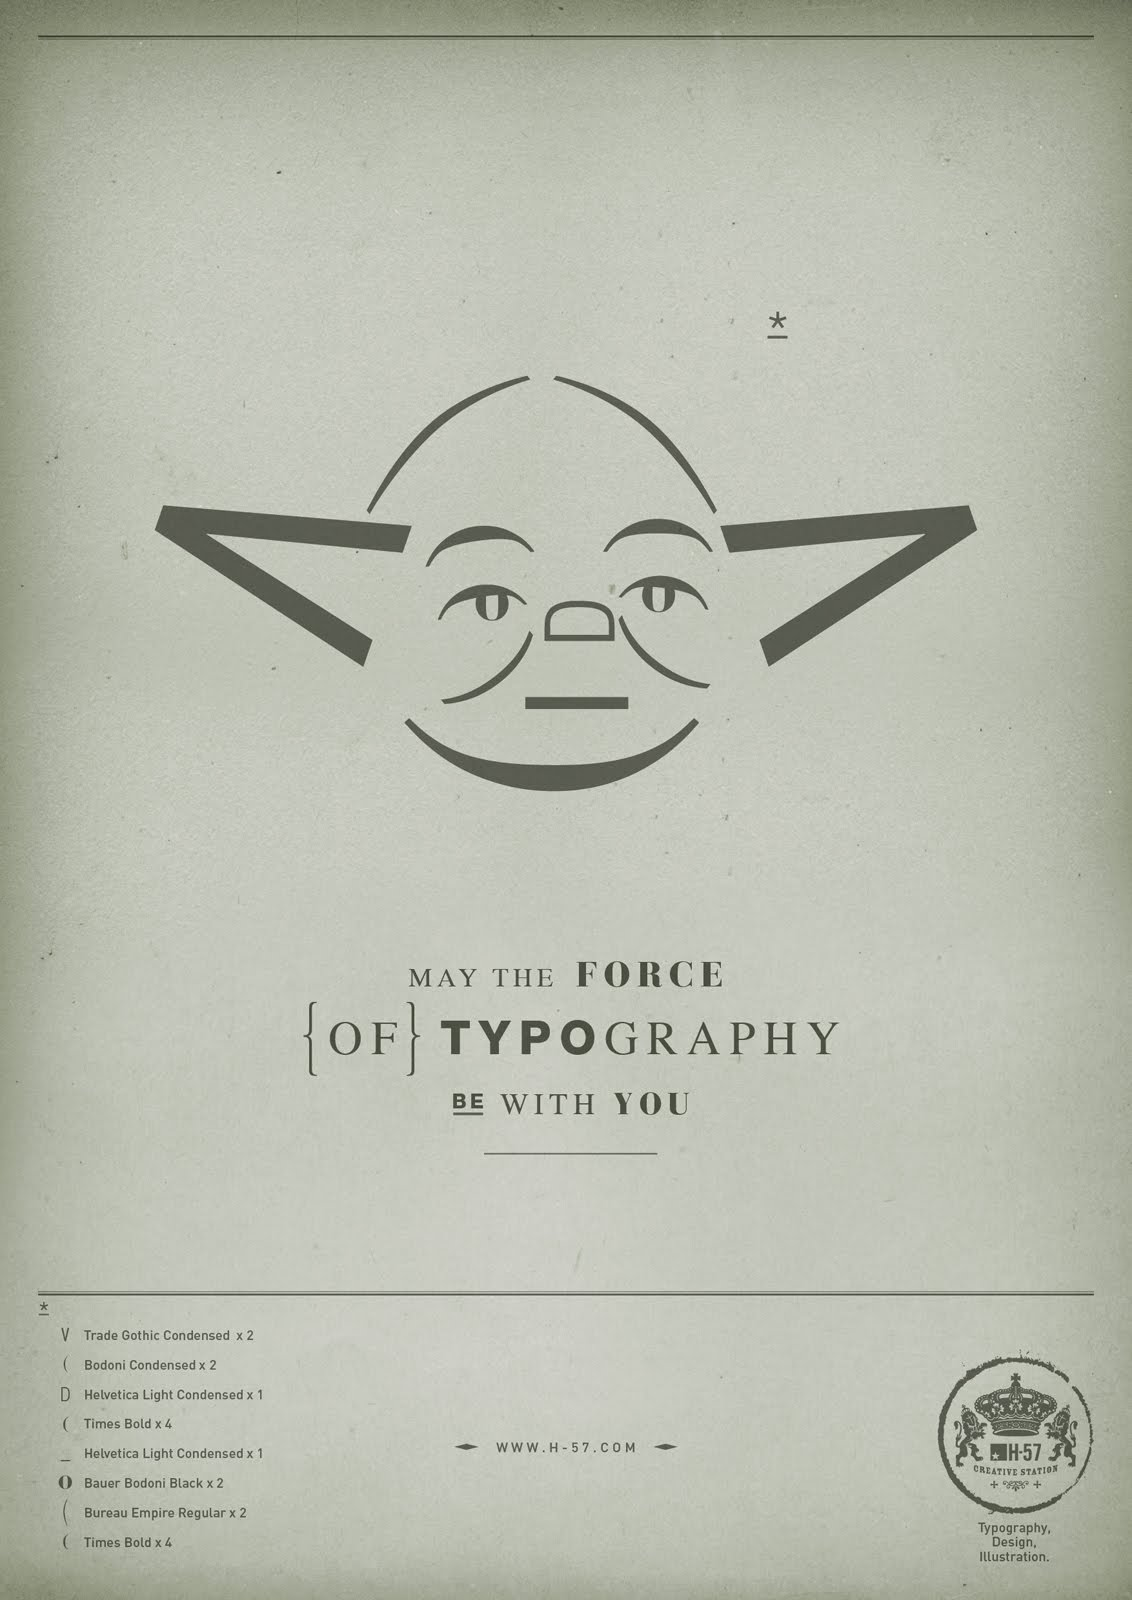 http://3.bp.blogspot.com/_42nL05s3A-8/TOO7RMdRYtI/AAAAAAAADDY/c05yK80mQwM/s1600/The-force-of-Typography383.jpg